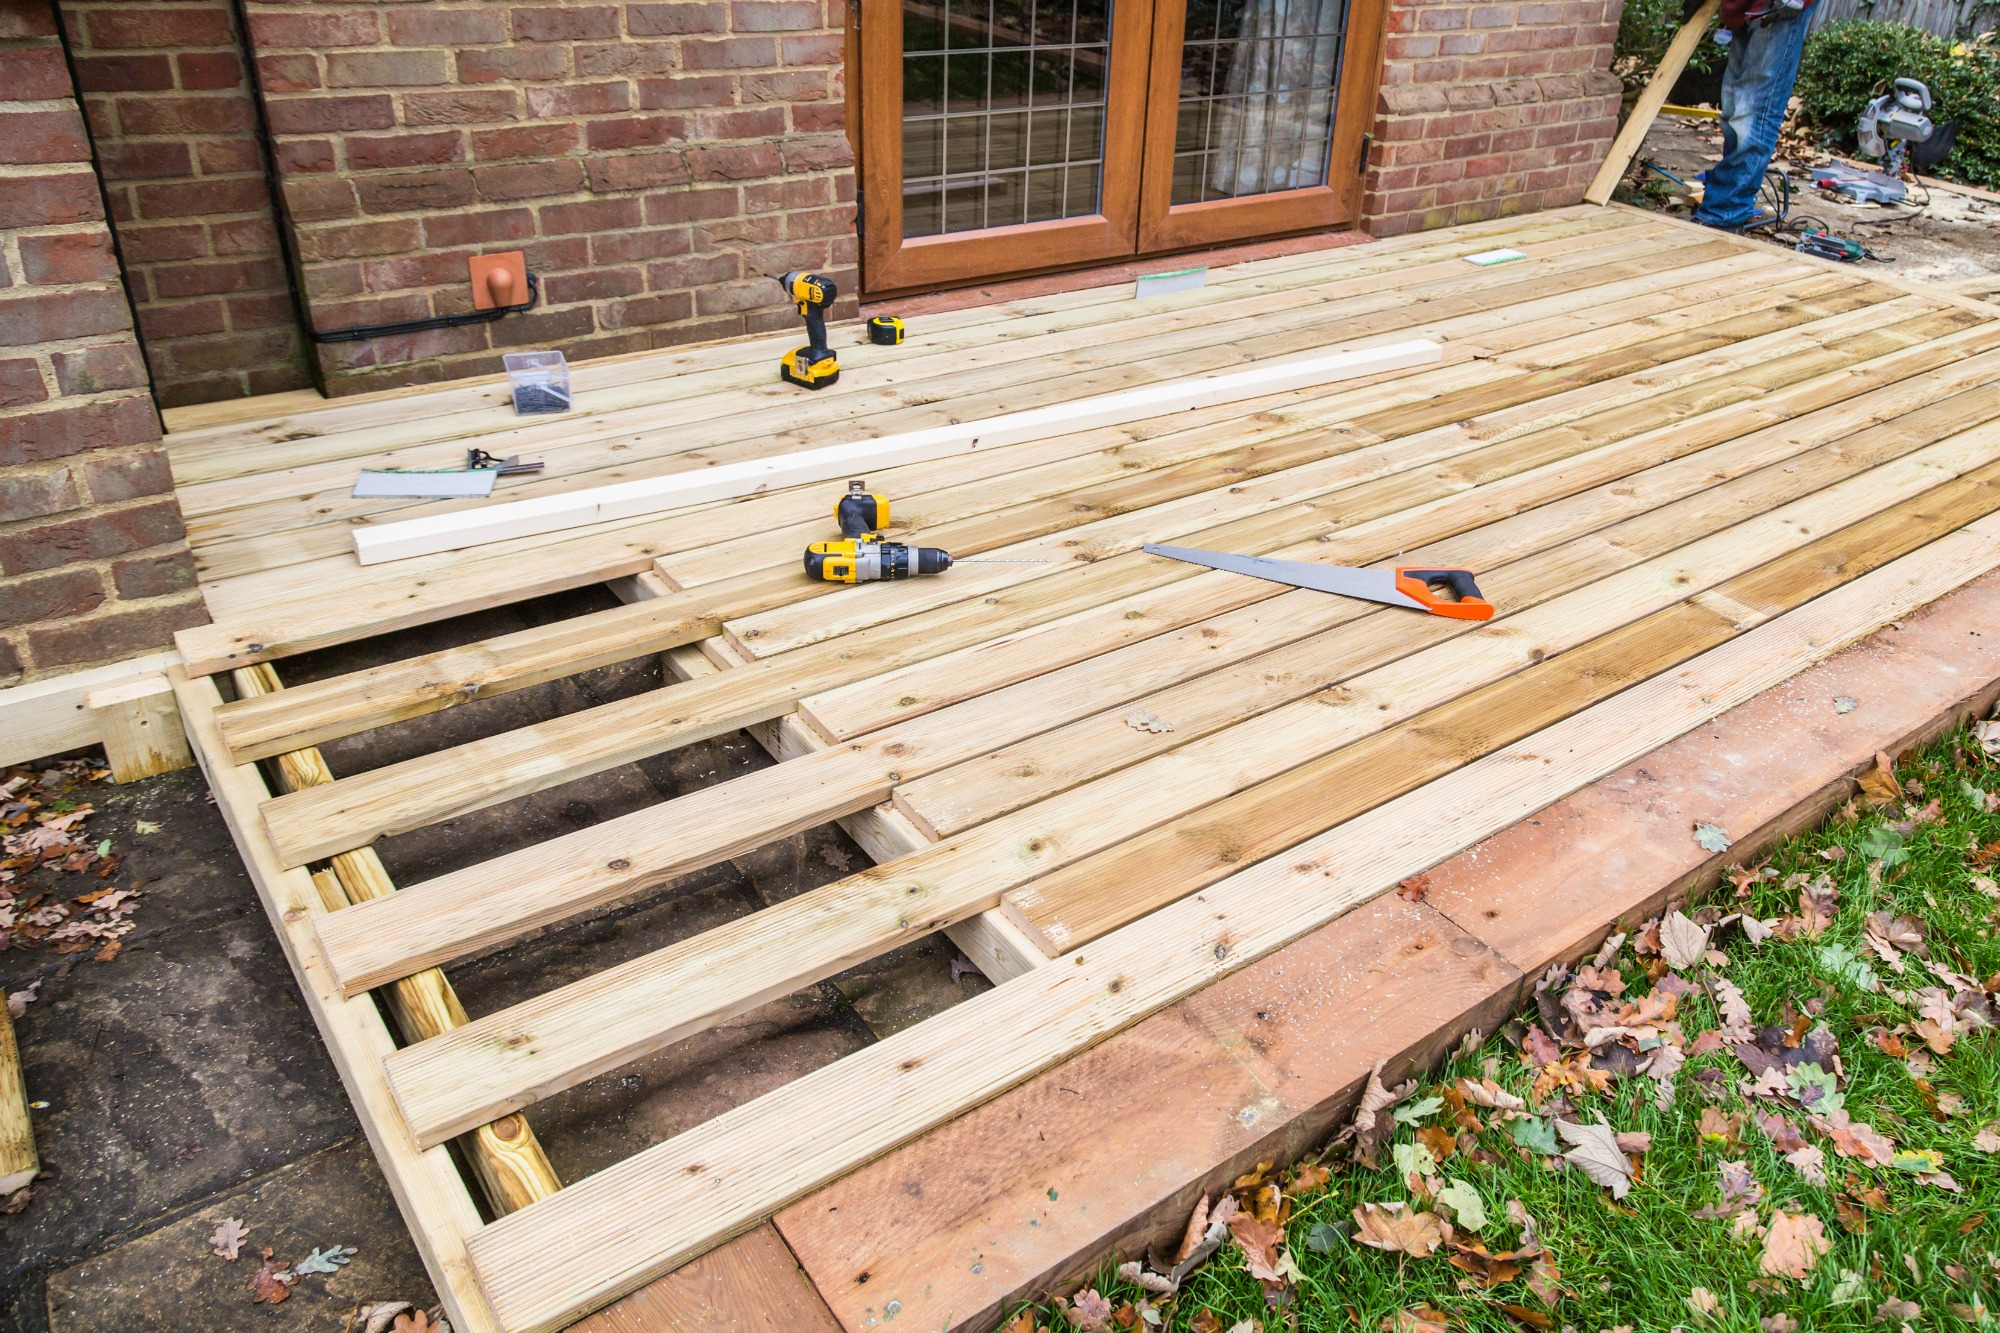 Decking for Rental Properties